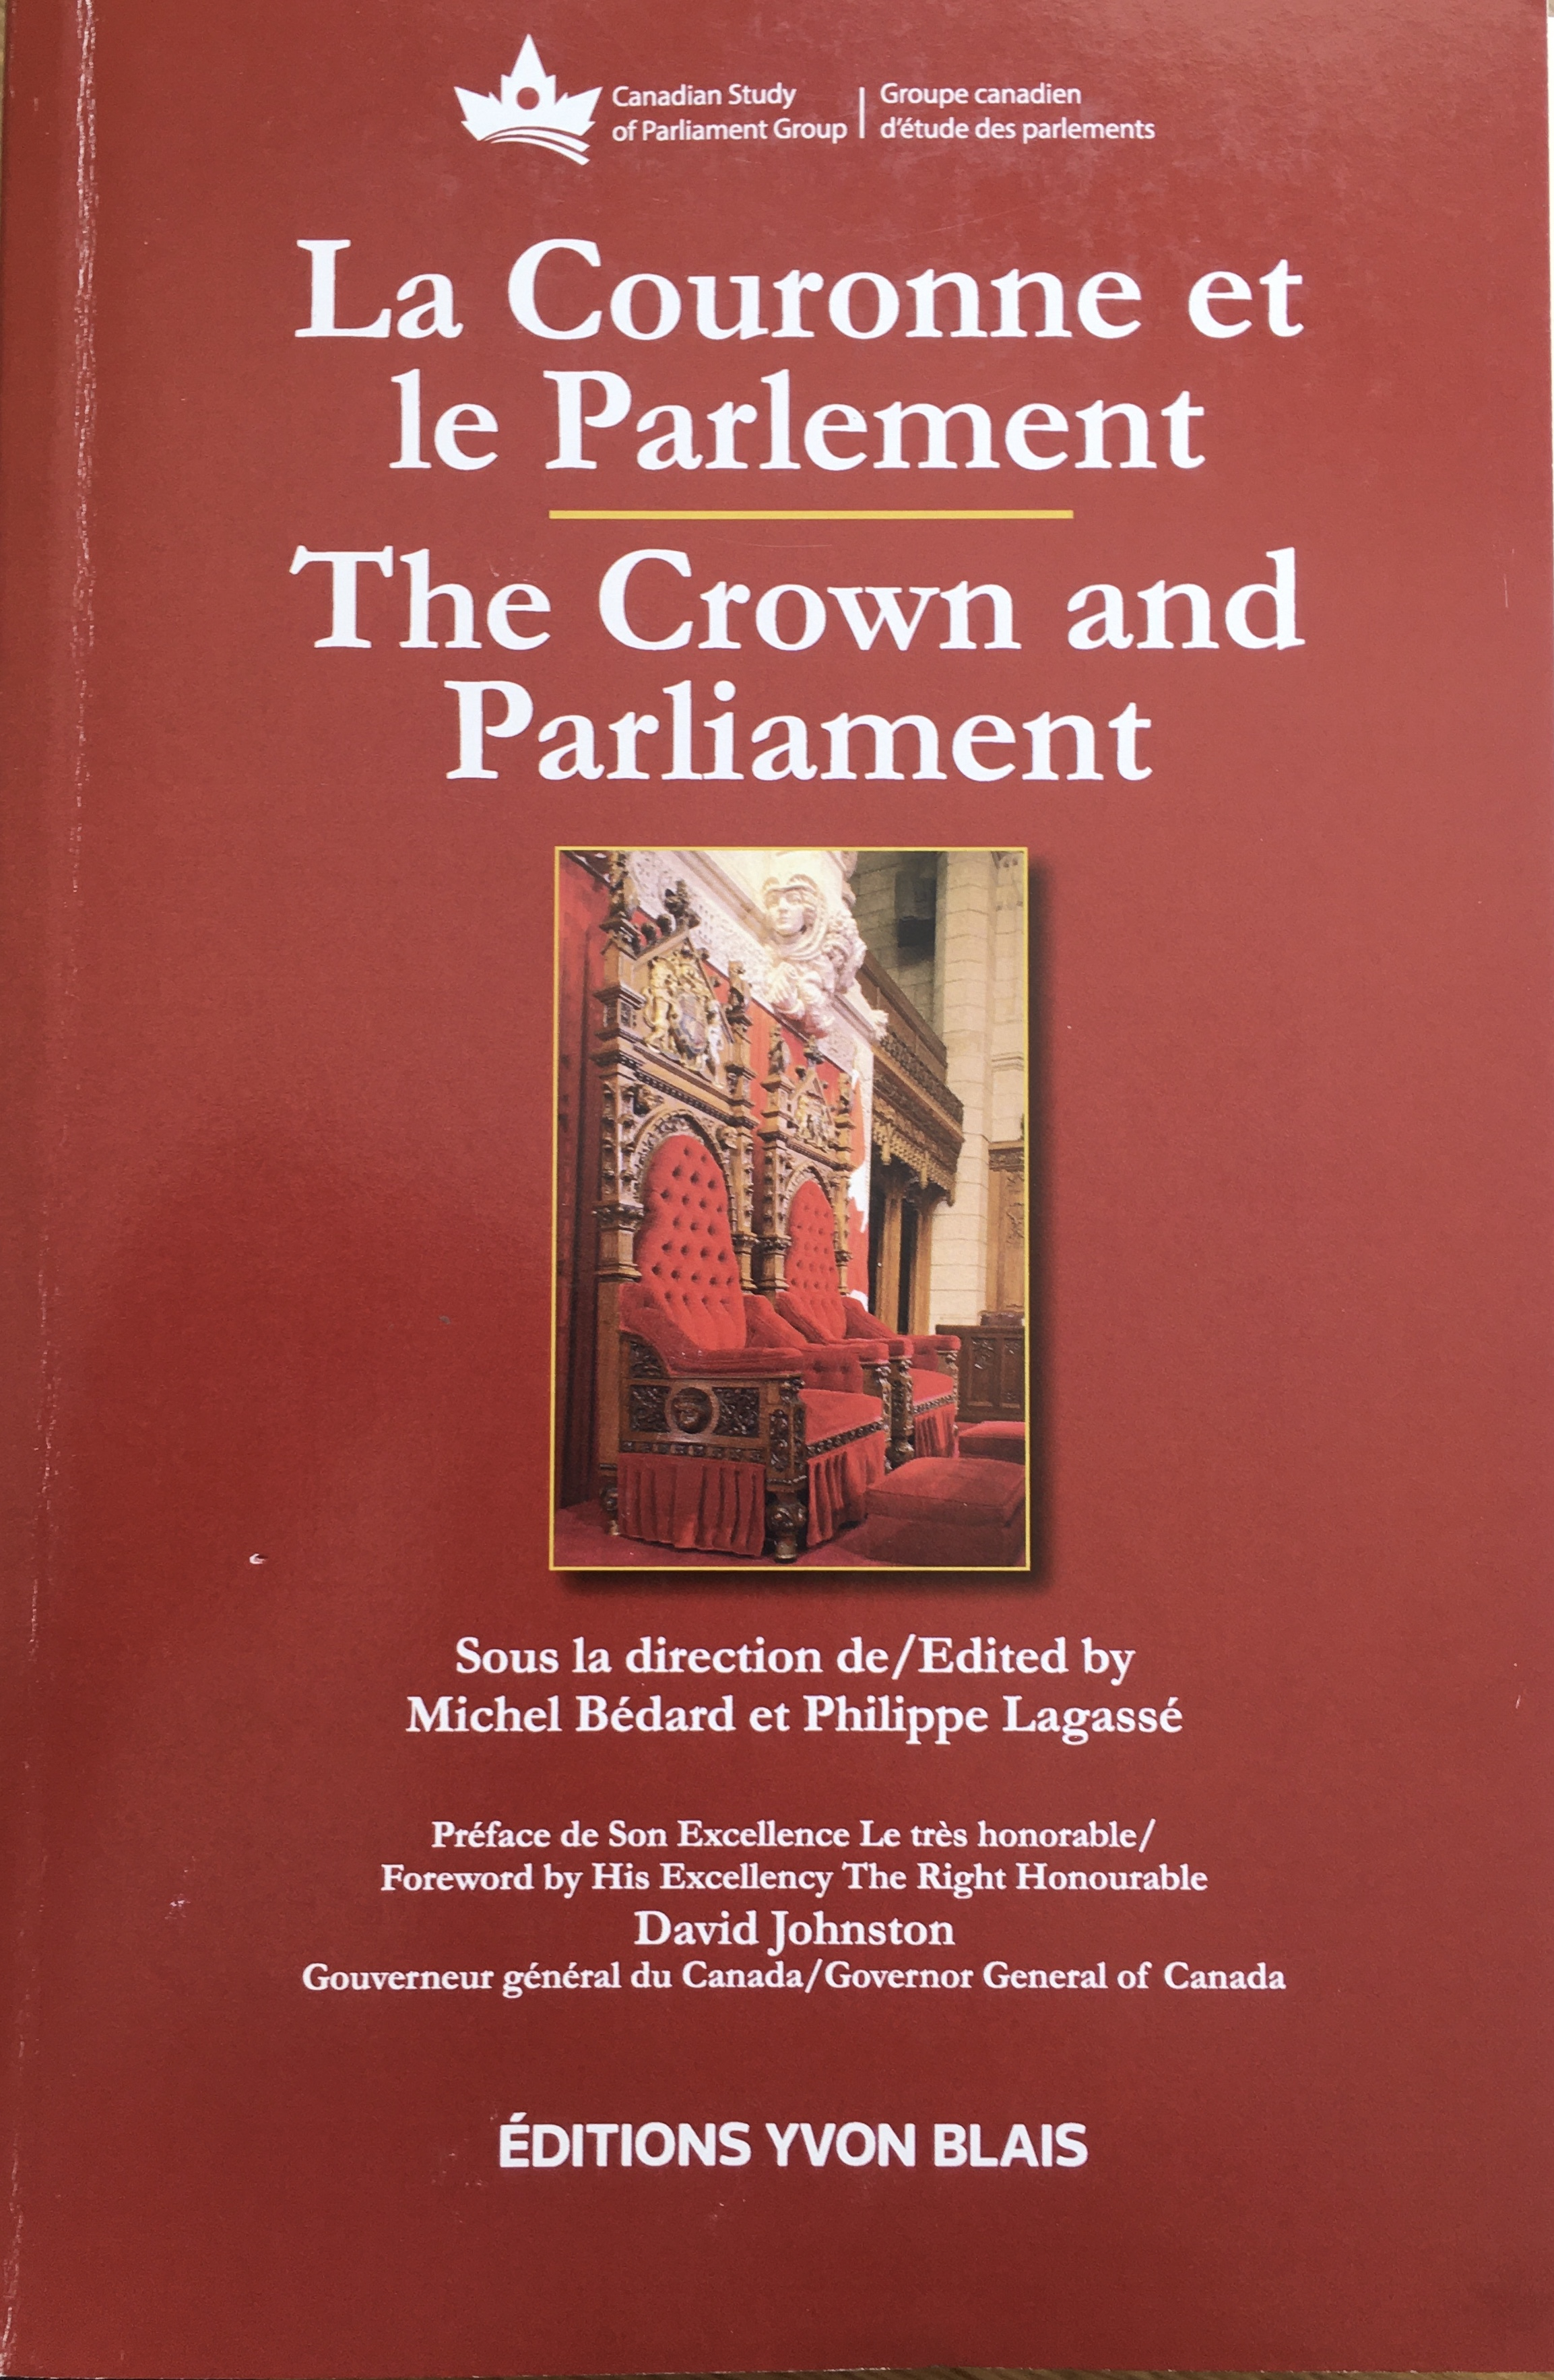 The Crown and Parliament